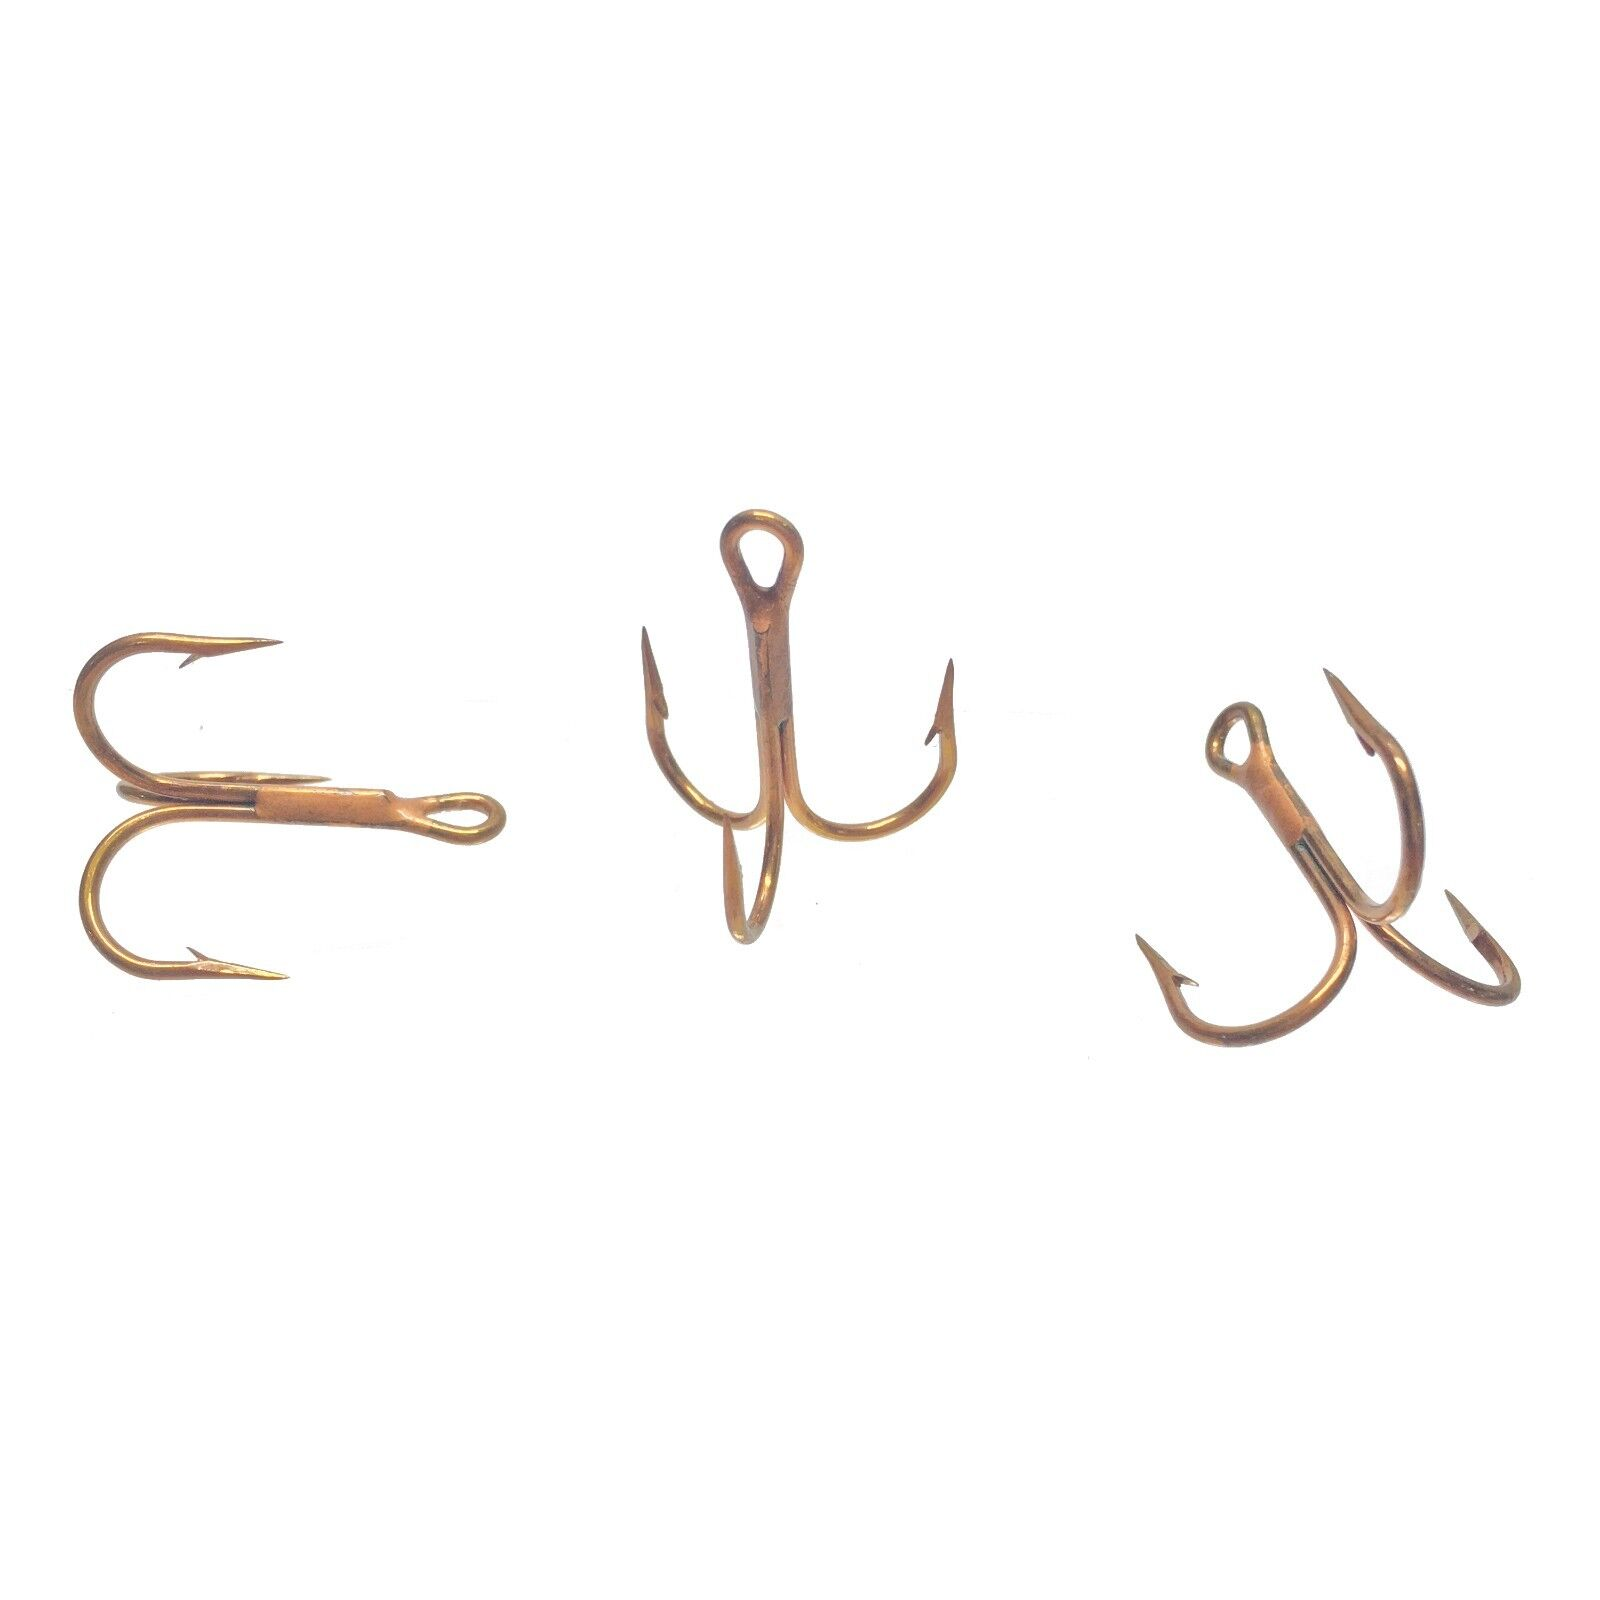 Size 10 EAGLE CLAW 954 3X-strong bronze treble Fishing Hooks 12